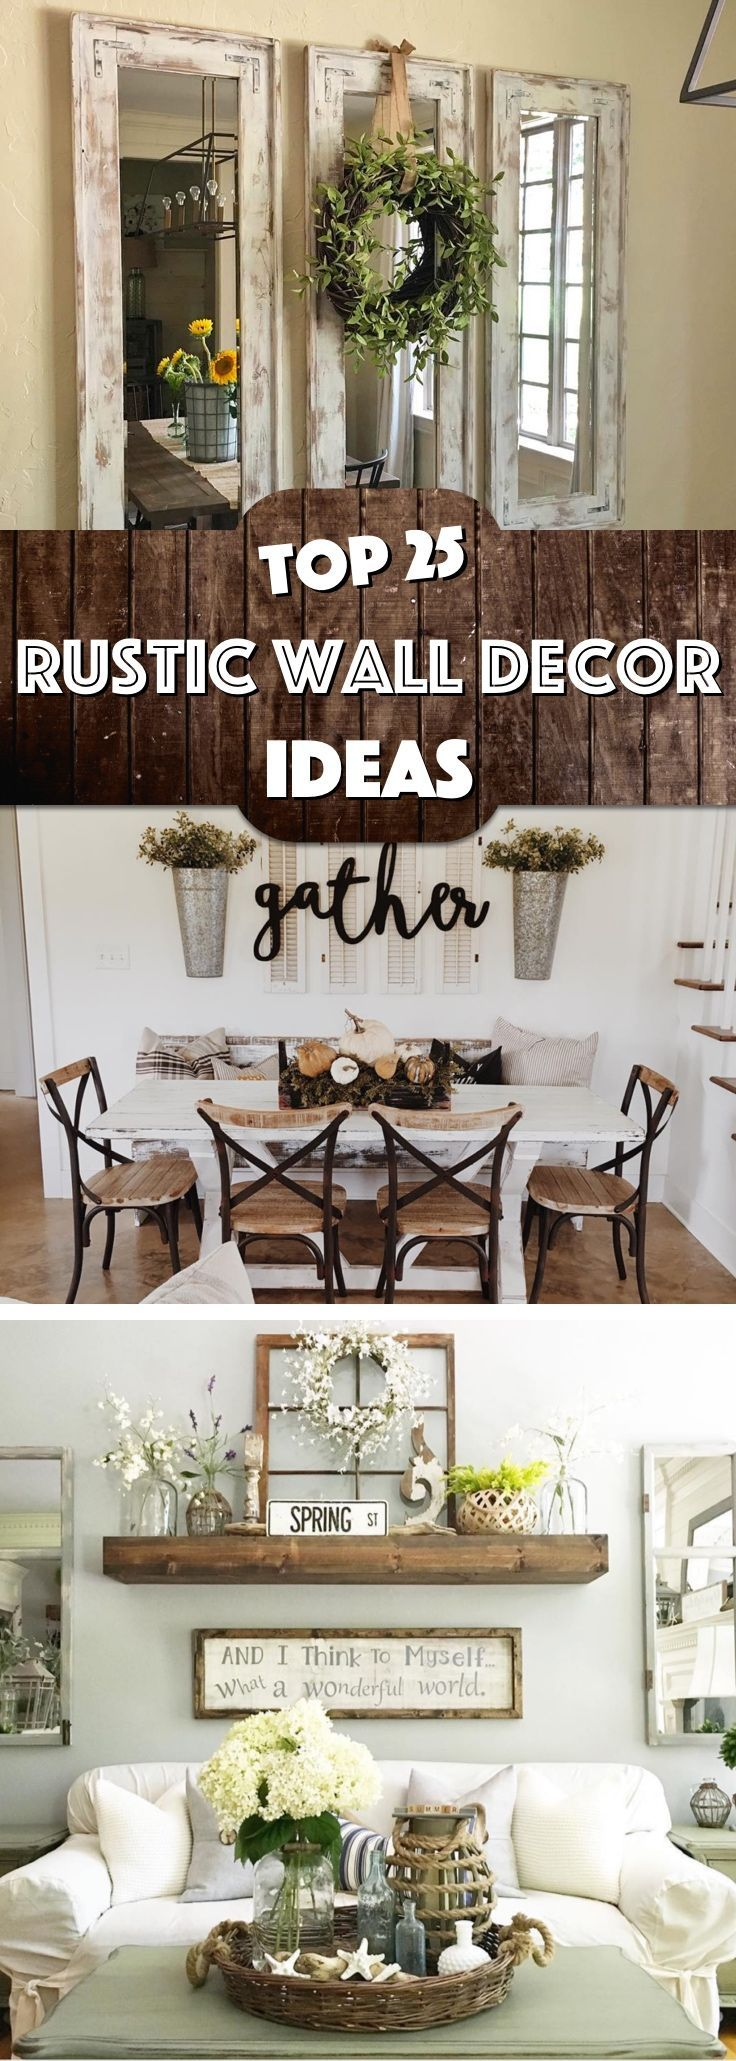 Best 25 wall collage decor ideas on pinterest picture wall 25 must try rustic wall decor ideas featuring the most amazing intended imperfections amipublicfo Image collections